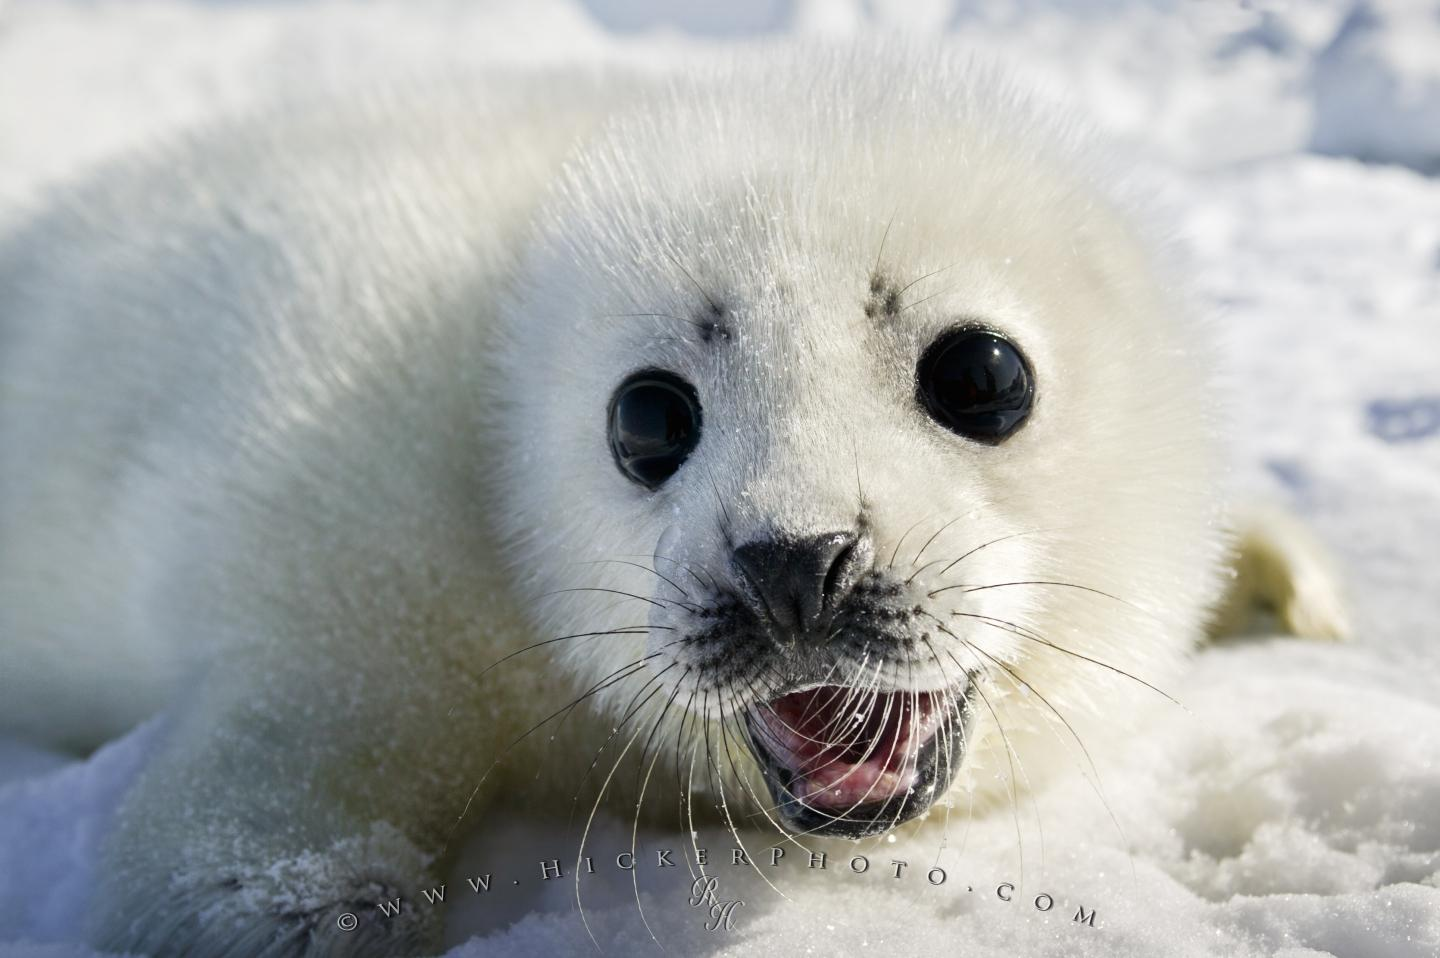 Free wallpaper background: Cute White Coat Harp Seal Baby Pup Baby Cute Seal Animal